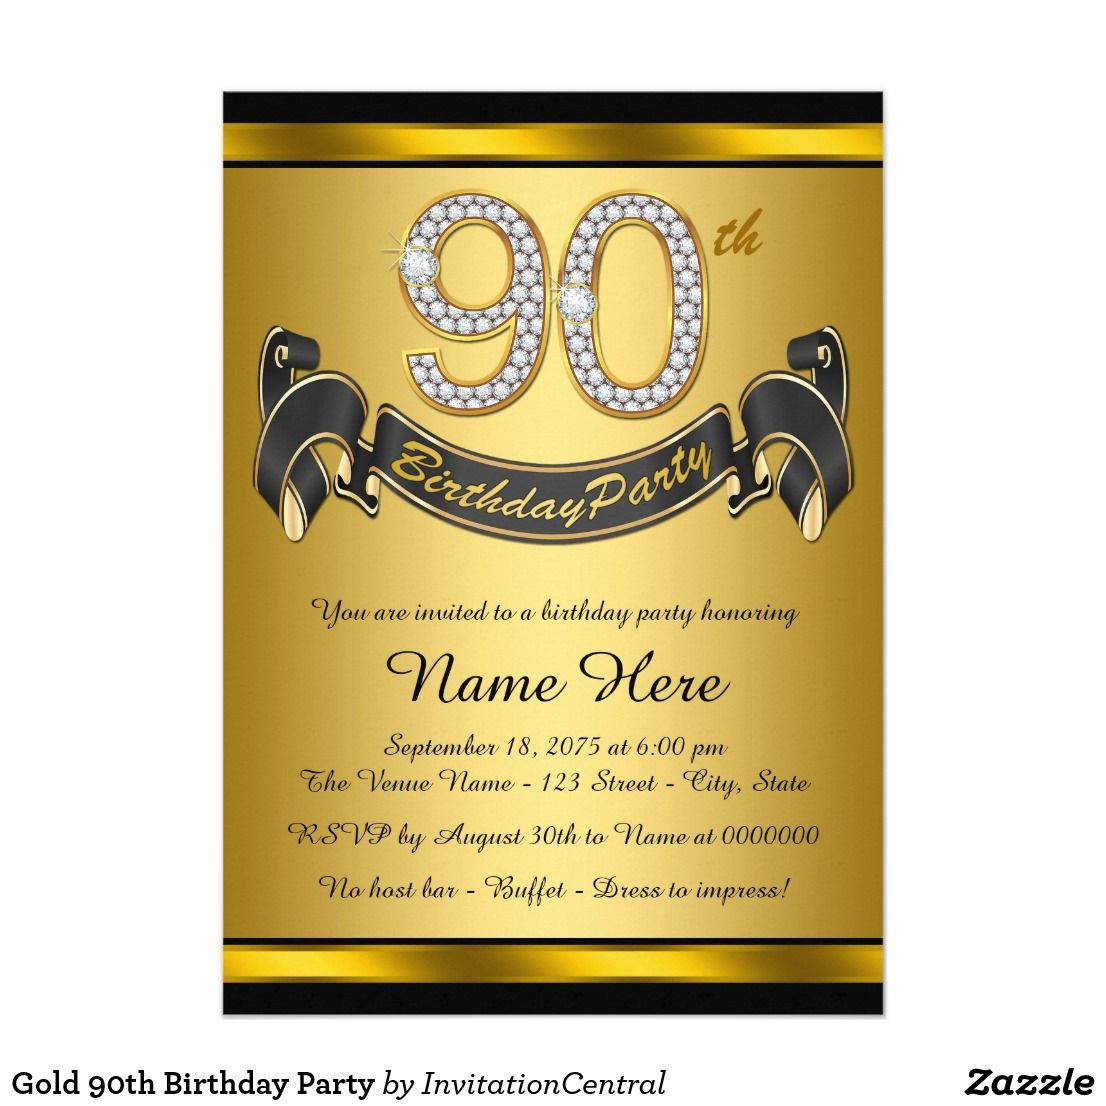 Gold 90th Birthday Party Card Invitation With Diamond Numbers And Banner On A Beautiful Rich Black Background